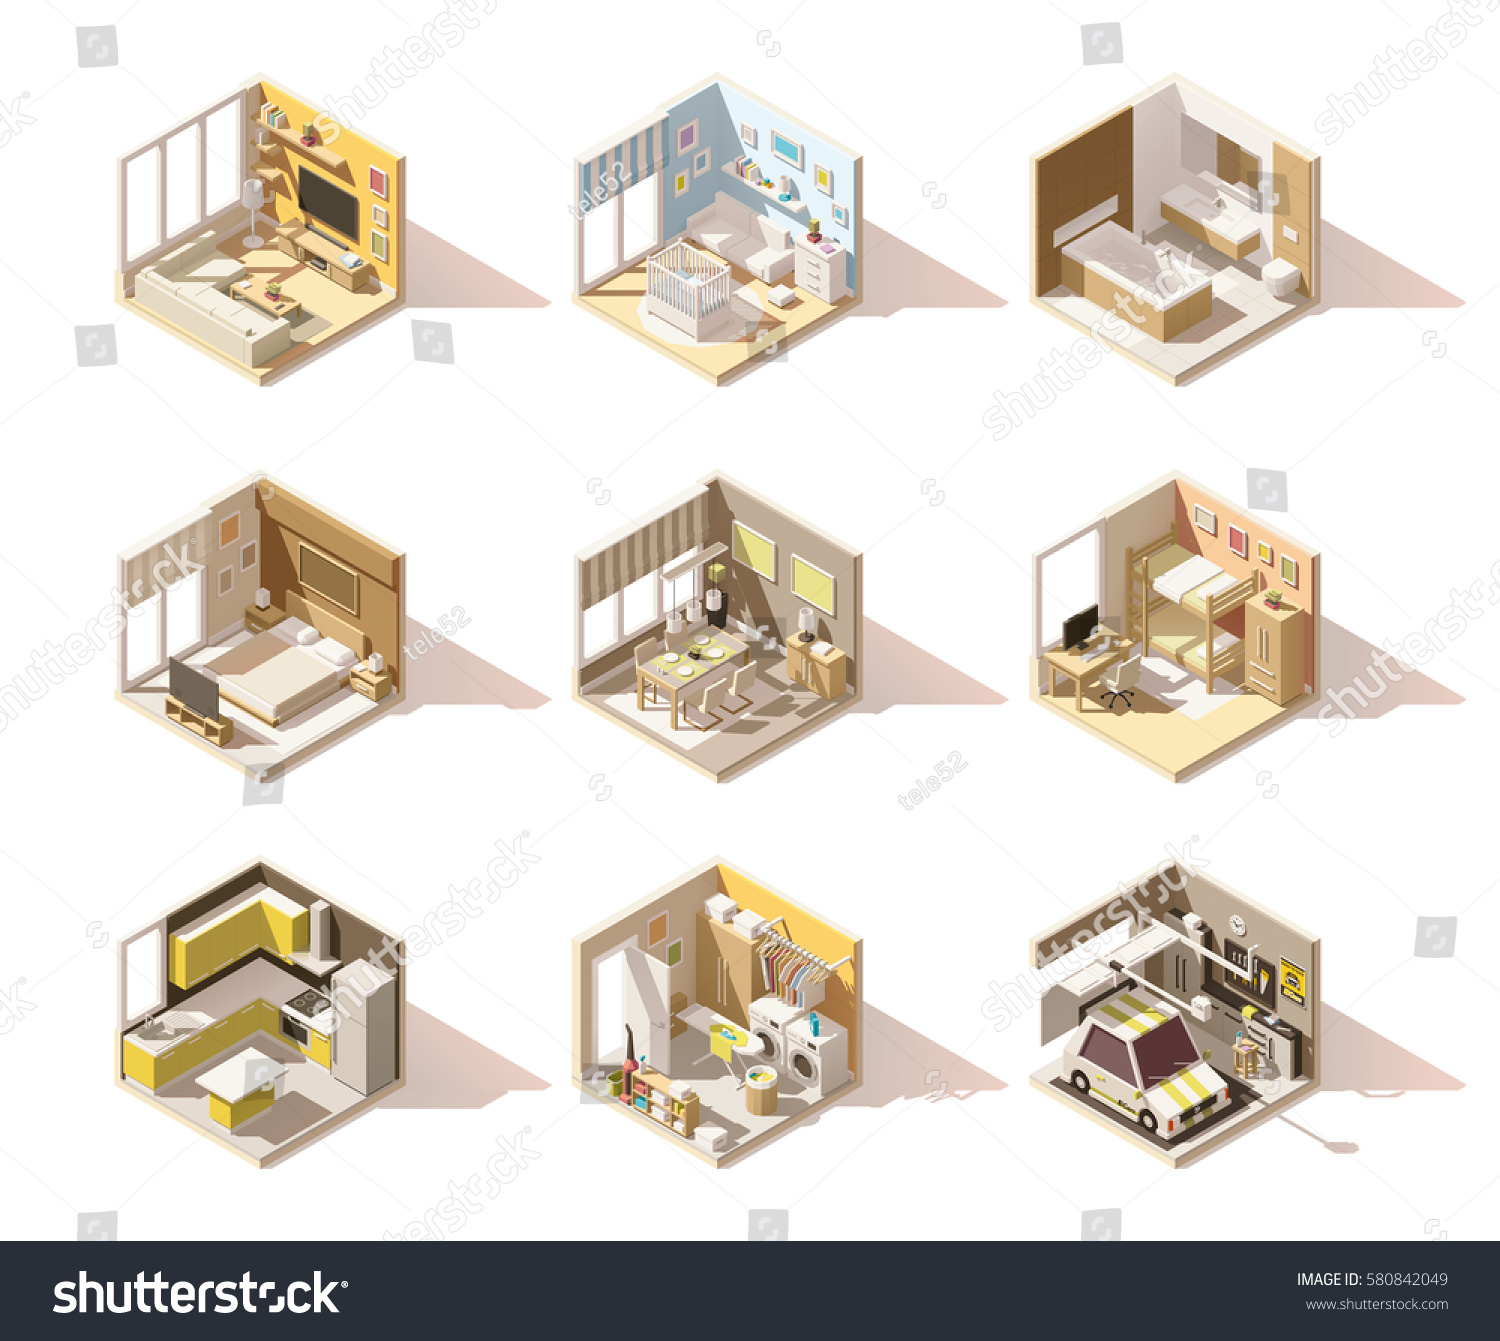 Vector isometric low poly home rooms stock vector for Living room bedroom bathroom kitchen